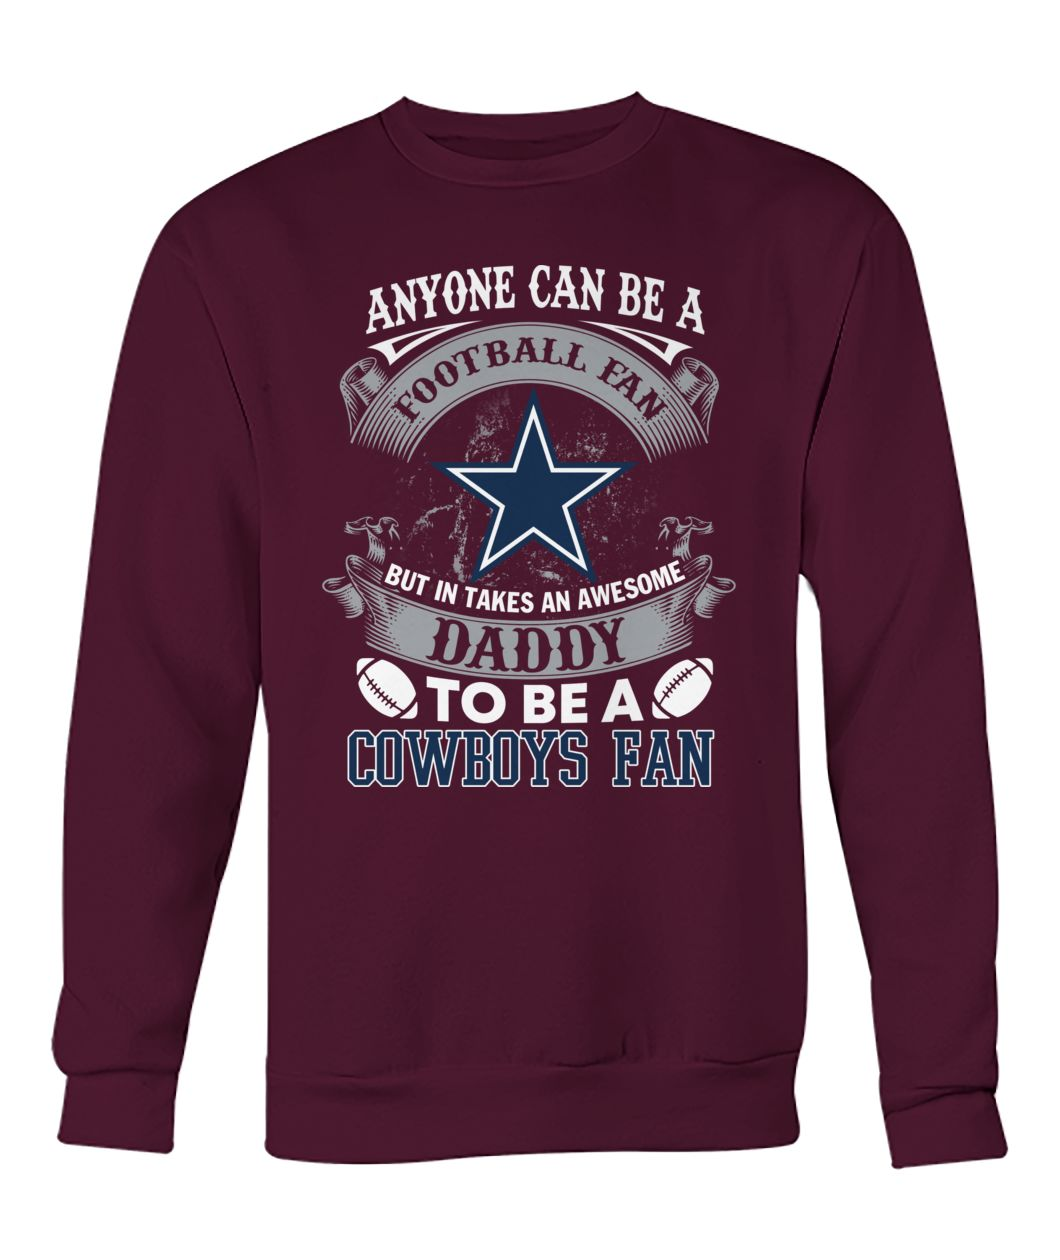 Anyone can be a football fan but in take an awesome daddy to be a dallas cowboys fan crew neck sweatshirt